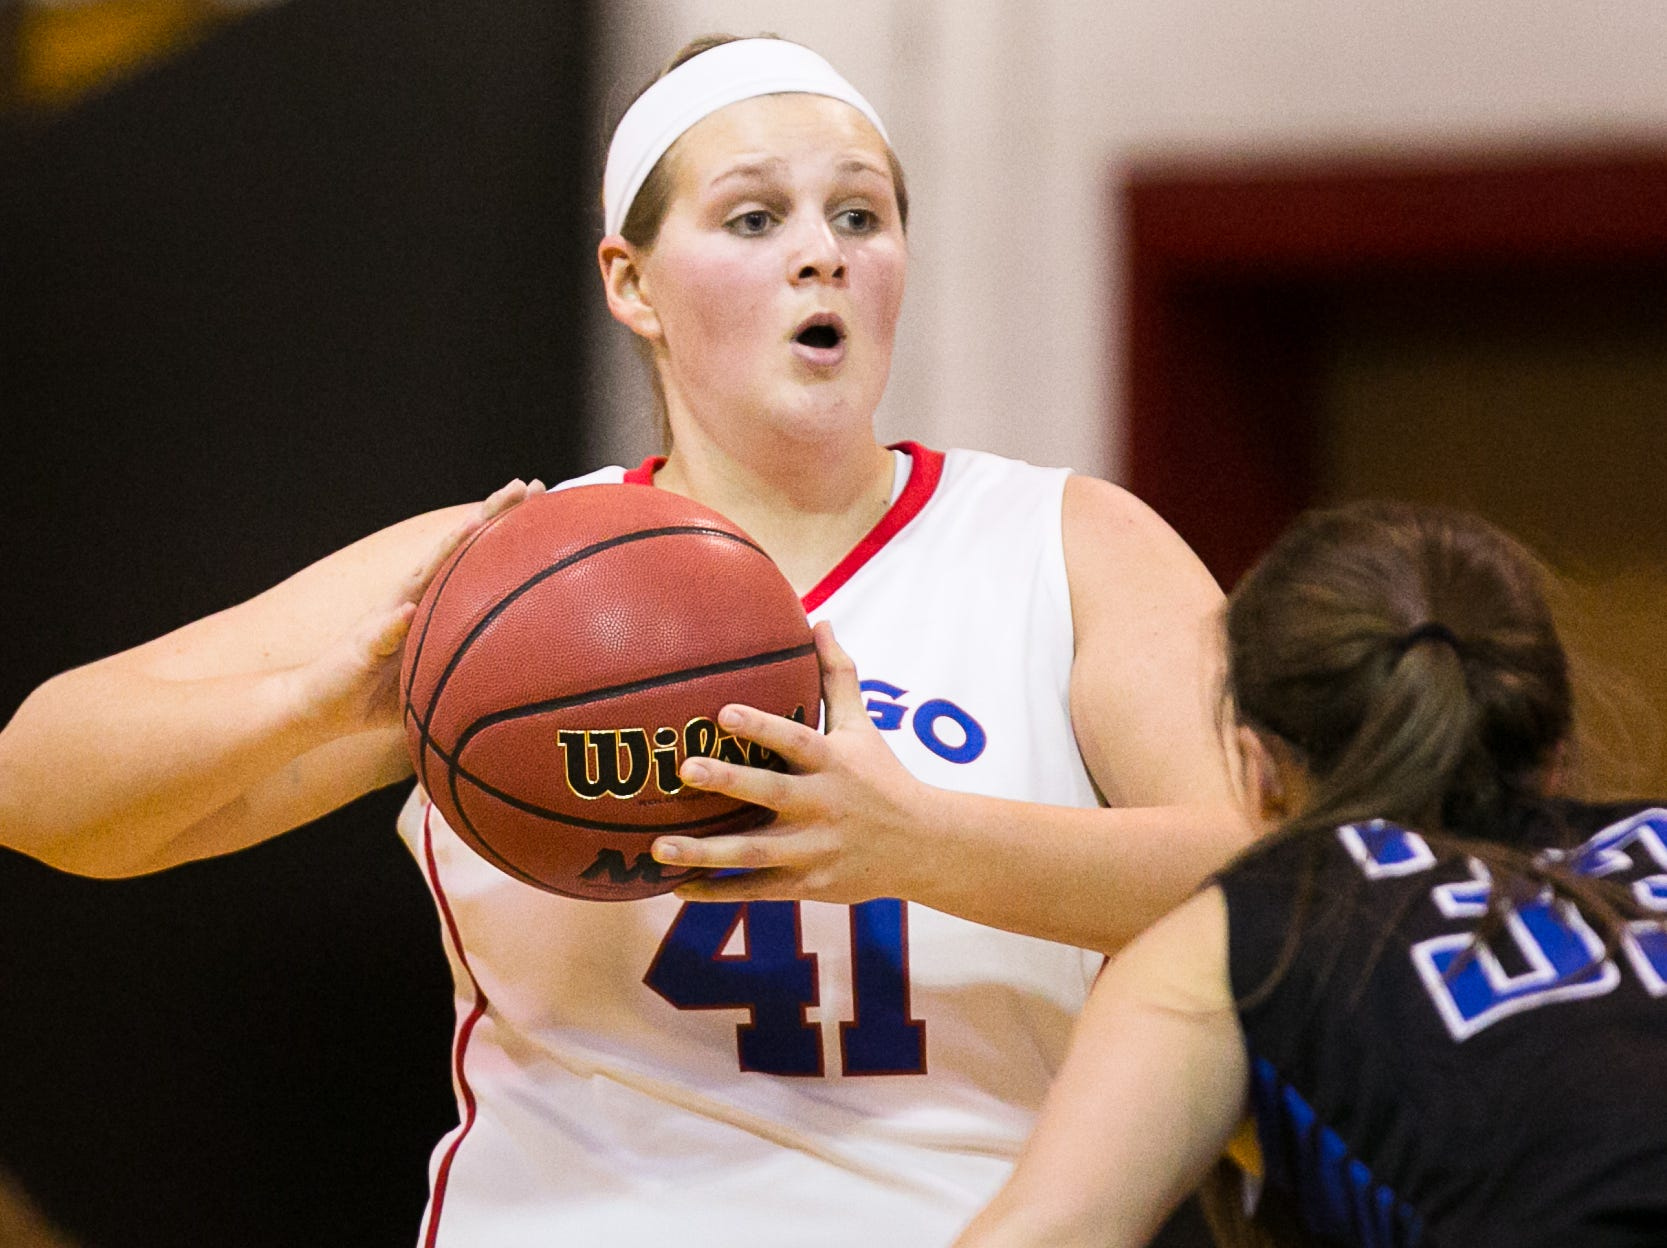 2013: Owego's Jill Silvanic looks to pass past a Horseheads defender Wednesday.